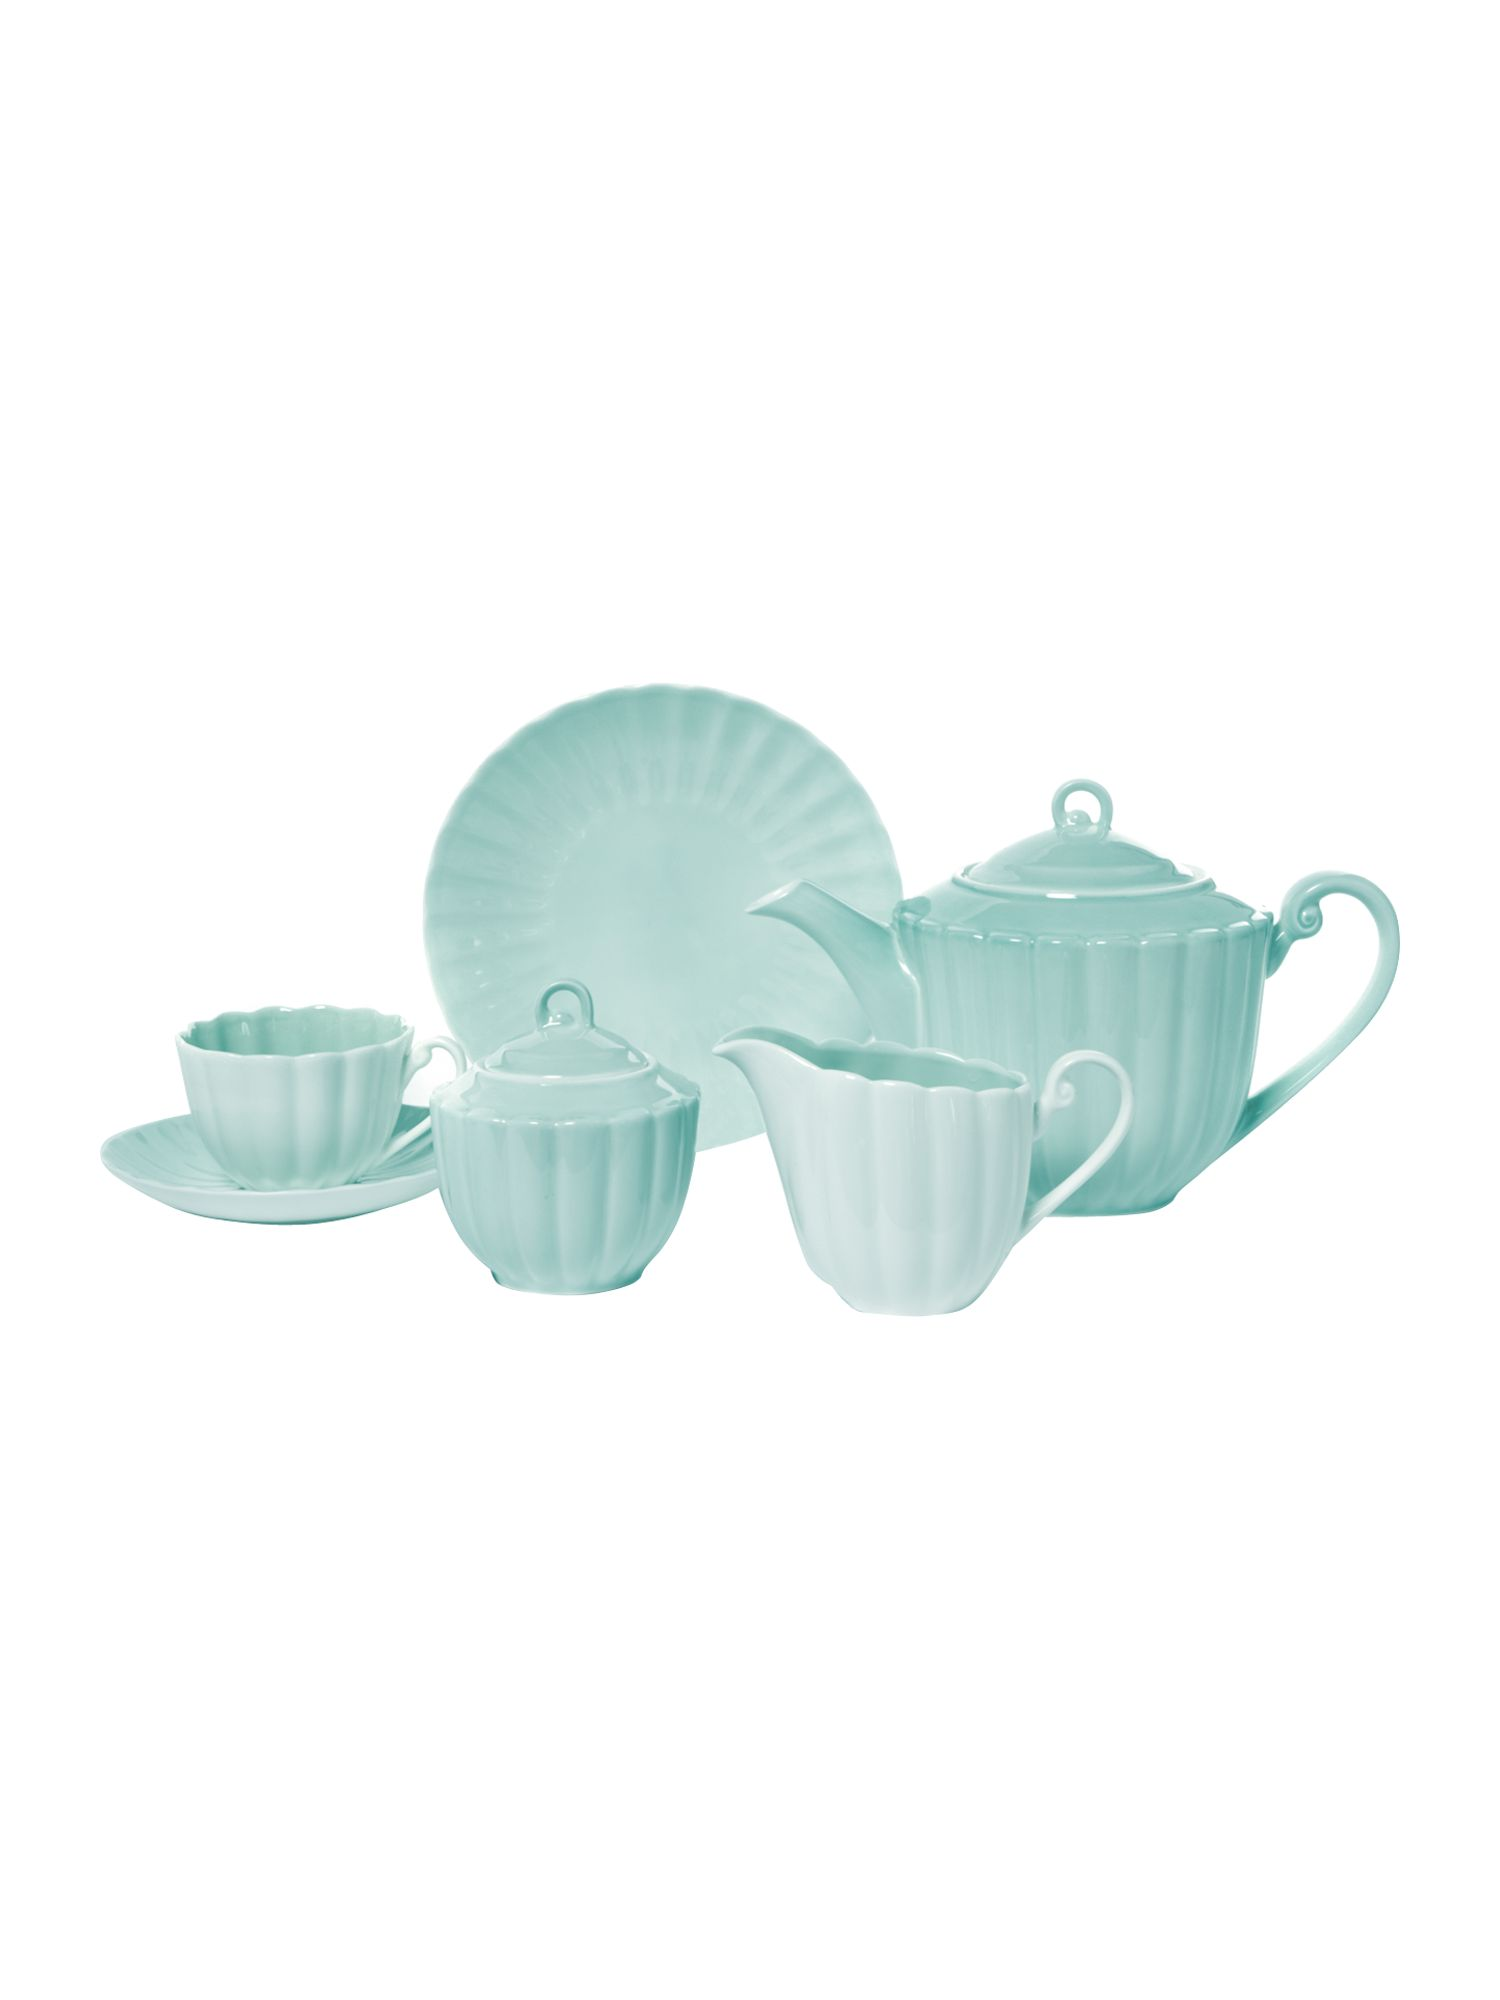 Frill sage tea set